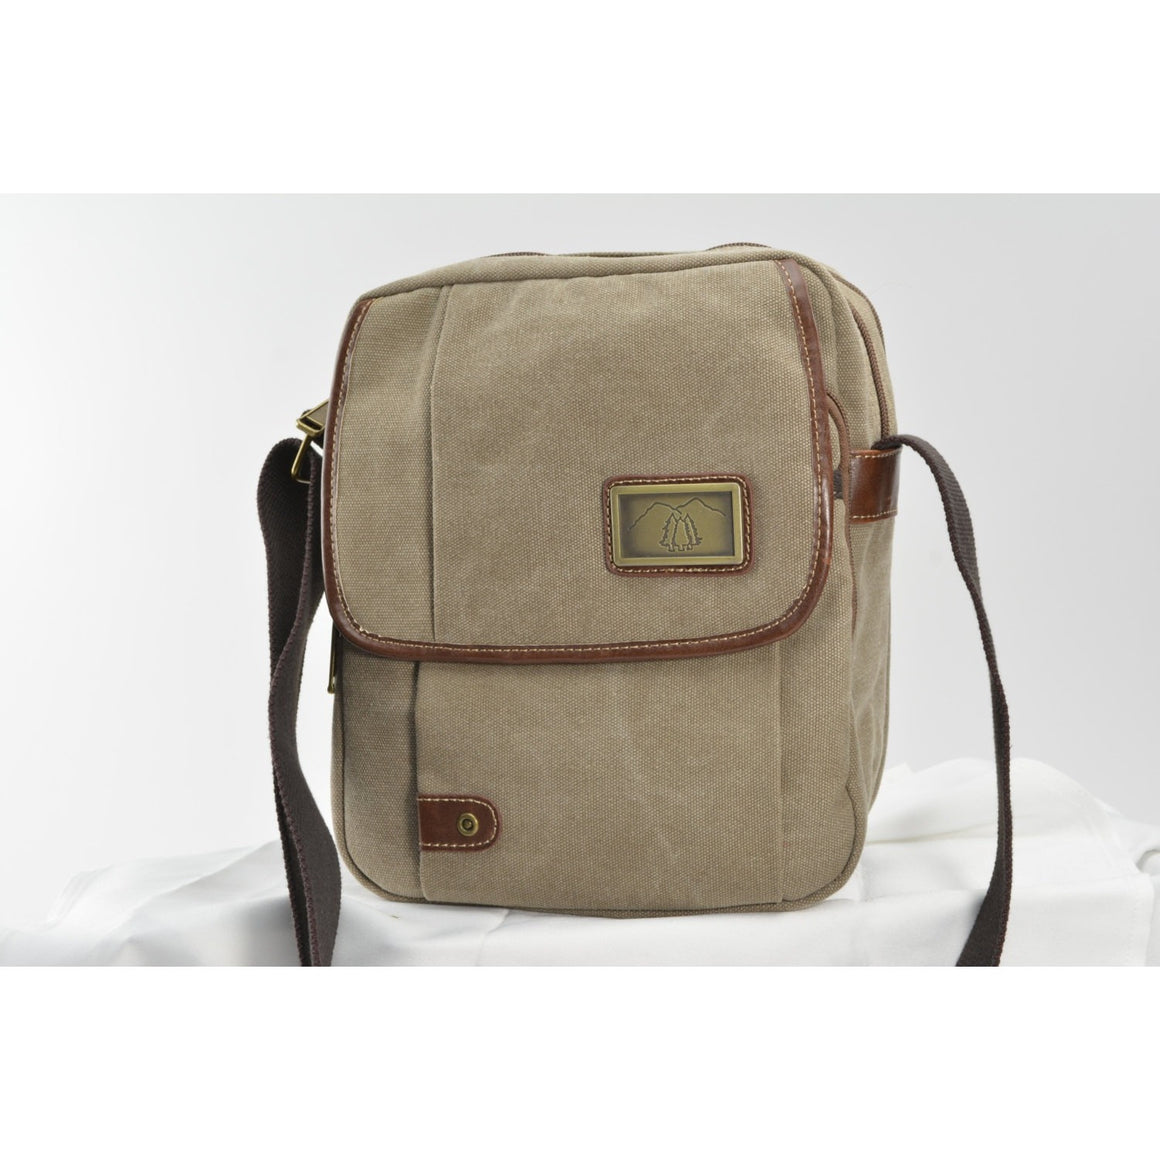 Camille Conceals Fawn Canvas Concealed Carry Bag - Large Top Draw™ Holster !